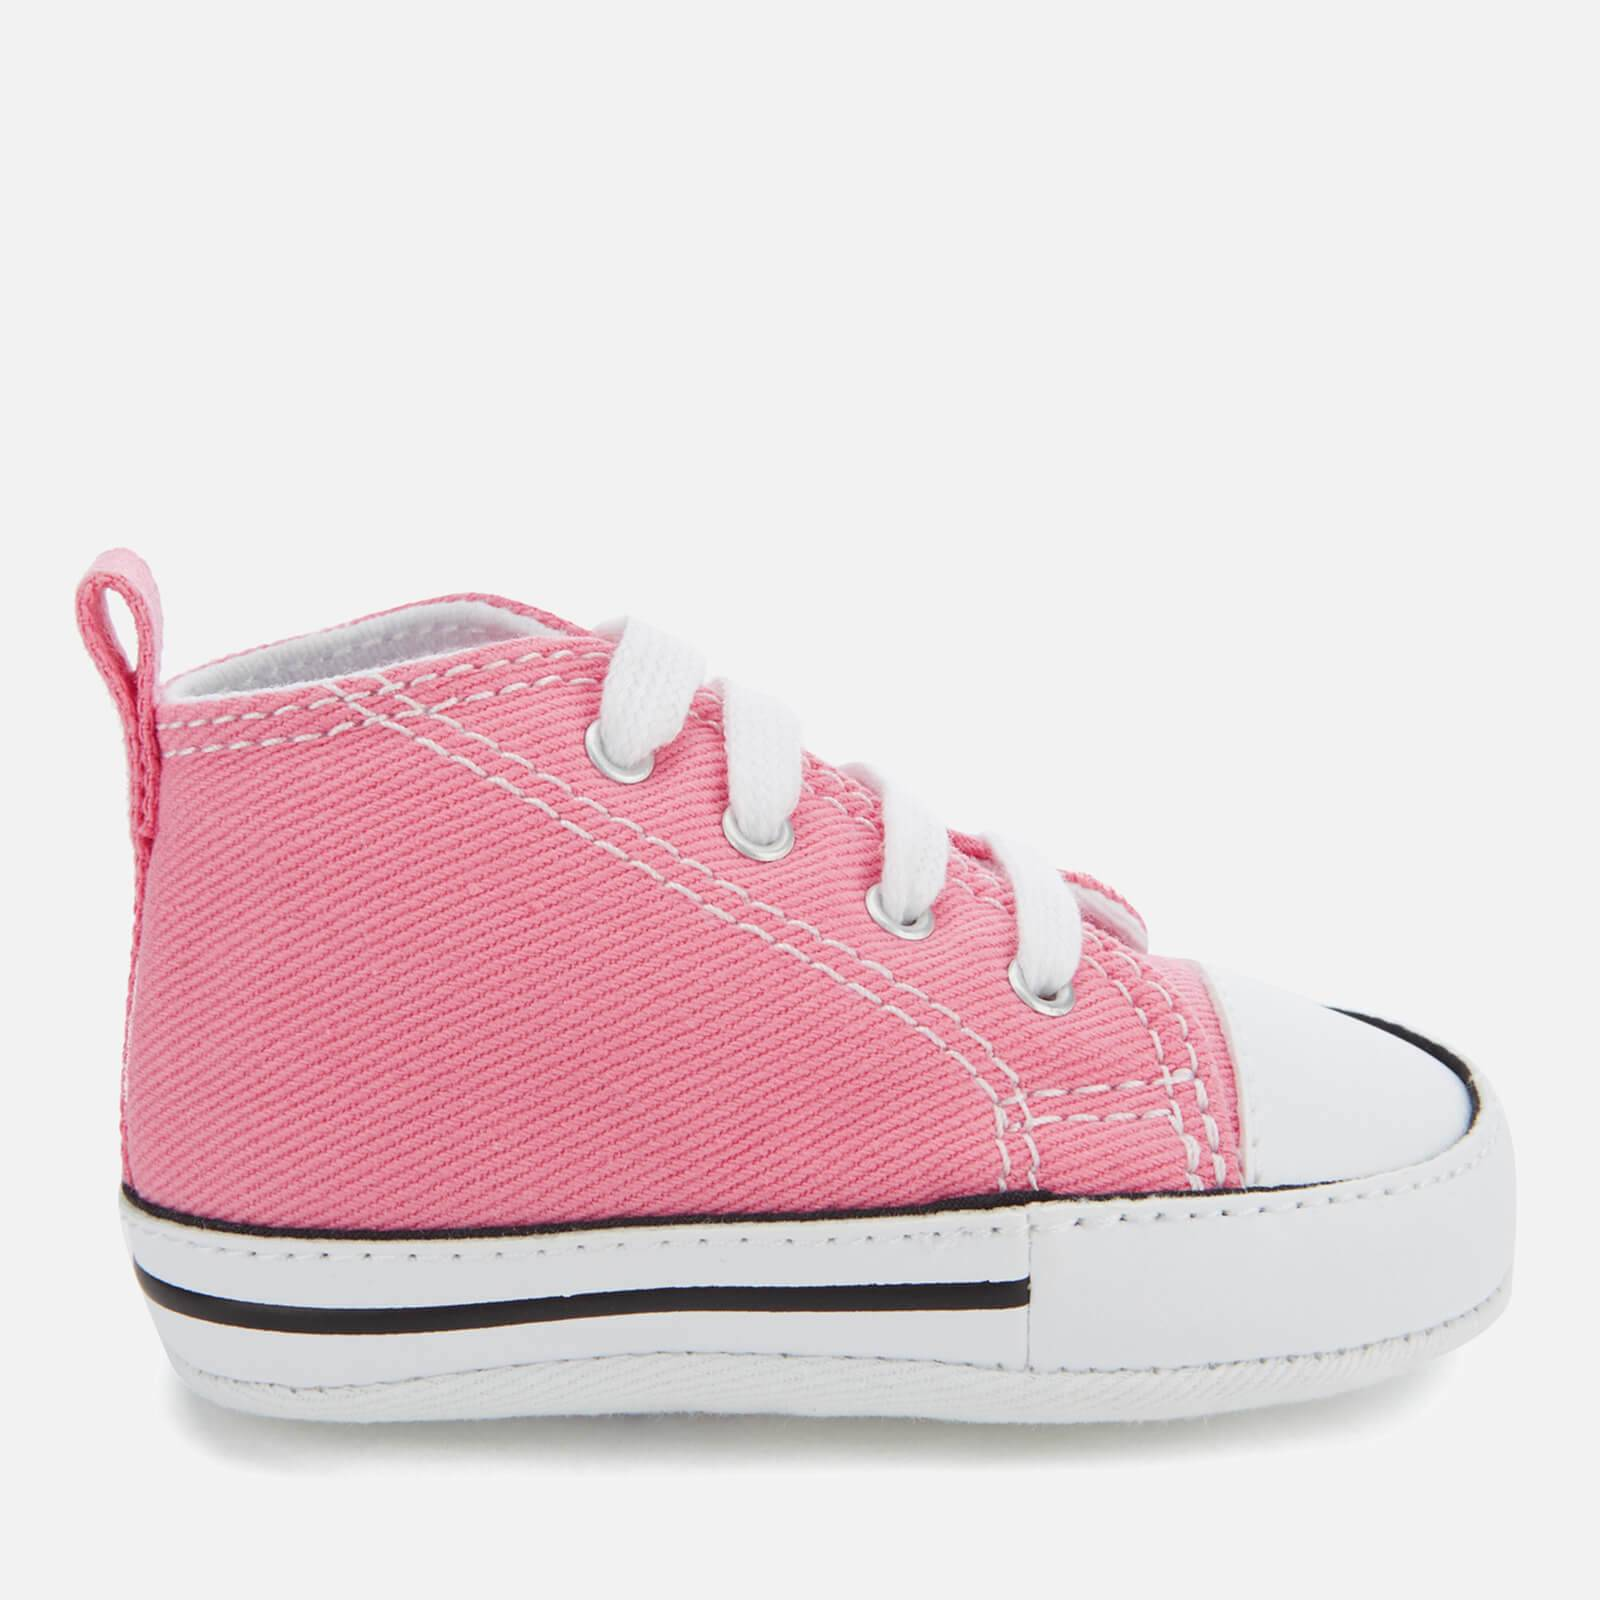 Converse Babies Chuck Taylor First Star Hi-Top Trainers - Pink - UK 3 Baby